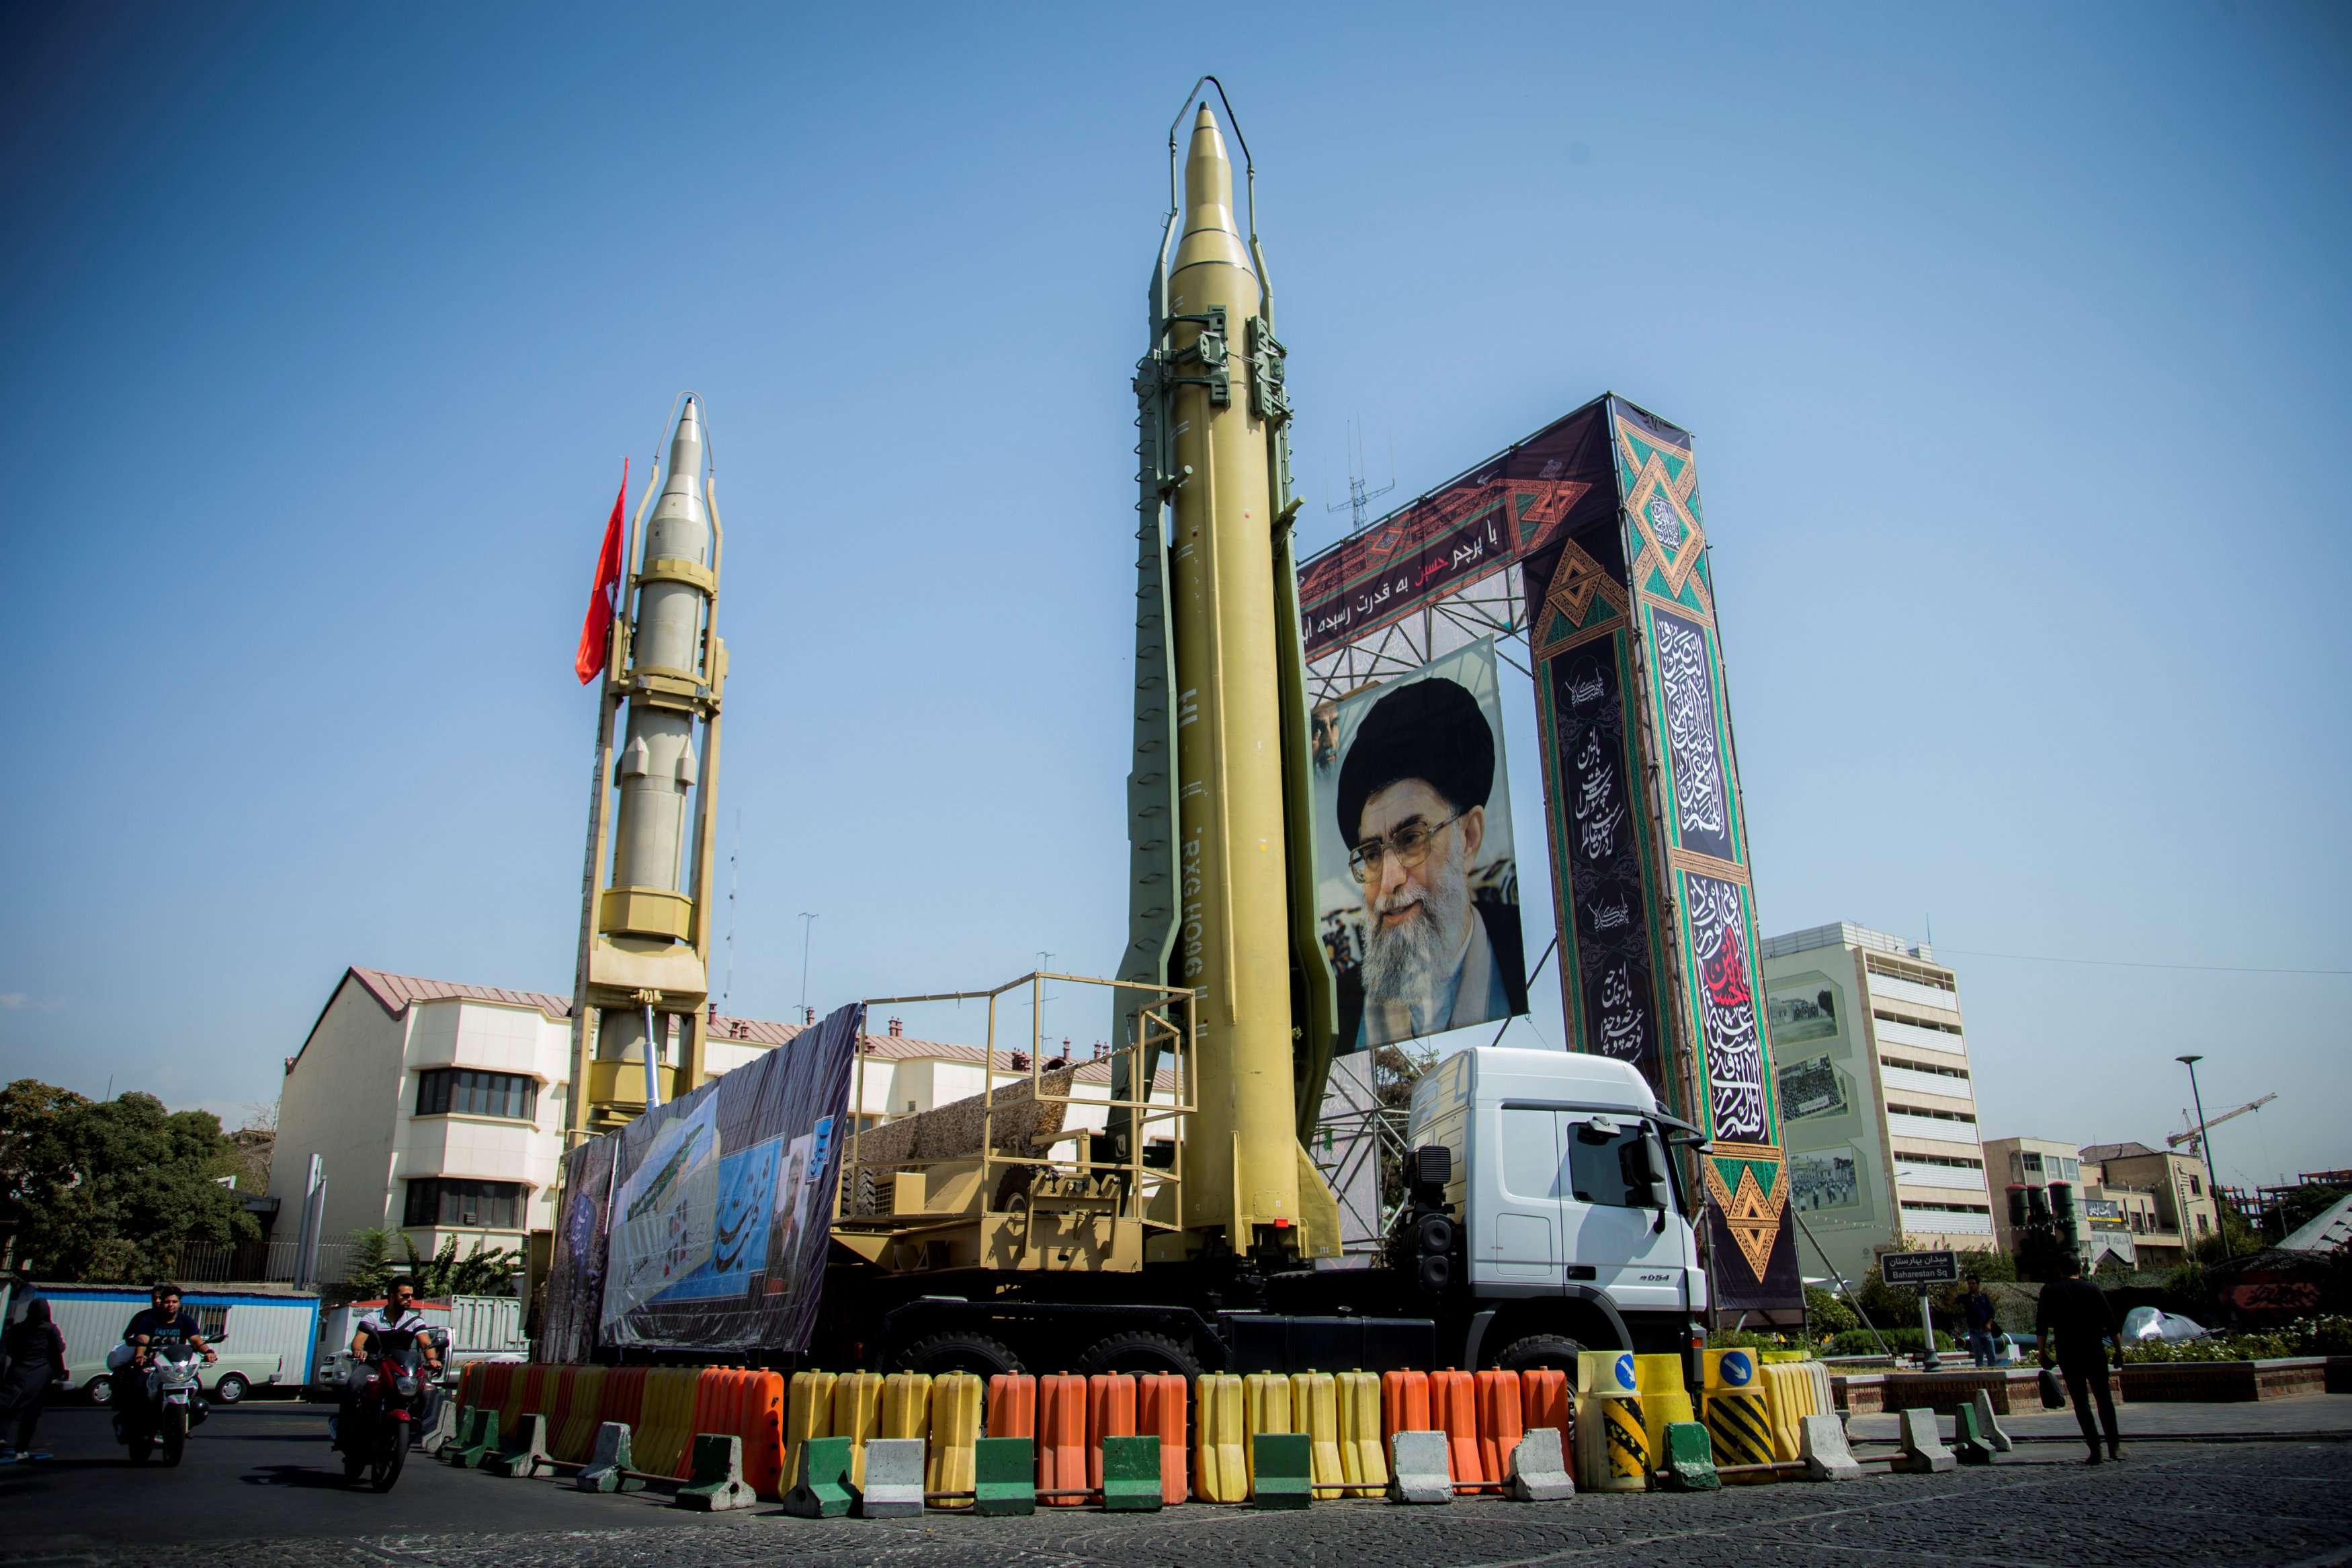 A display featuring missiles and a portrait of Iran's Supreme Leader Ayatollah Ali Khamenei is seen at Baharestan Square in Tehran. (Reuters)